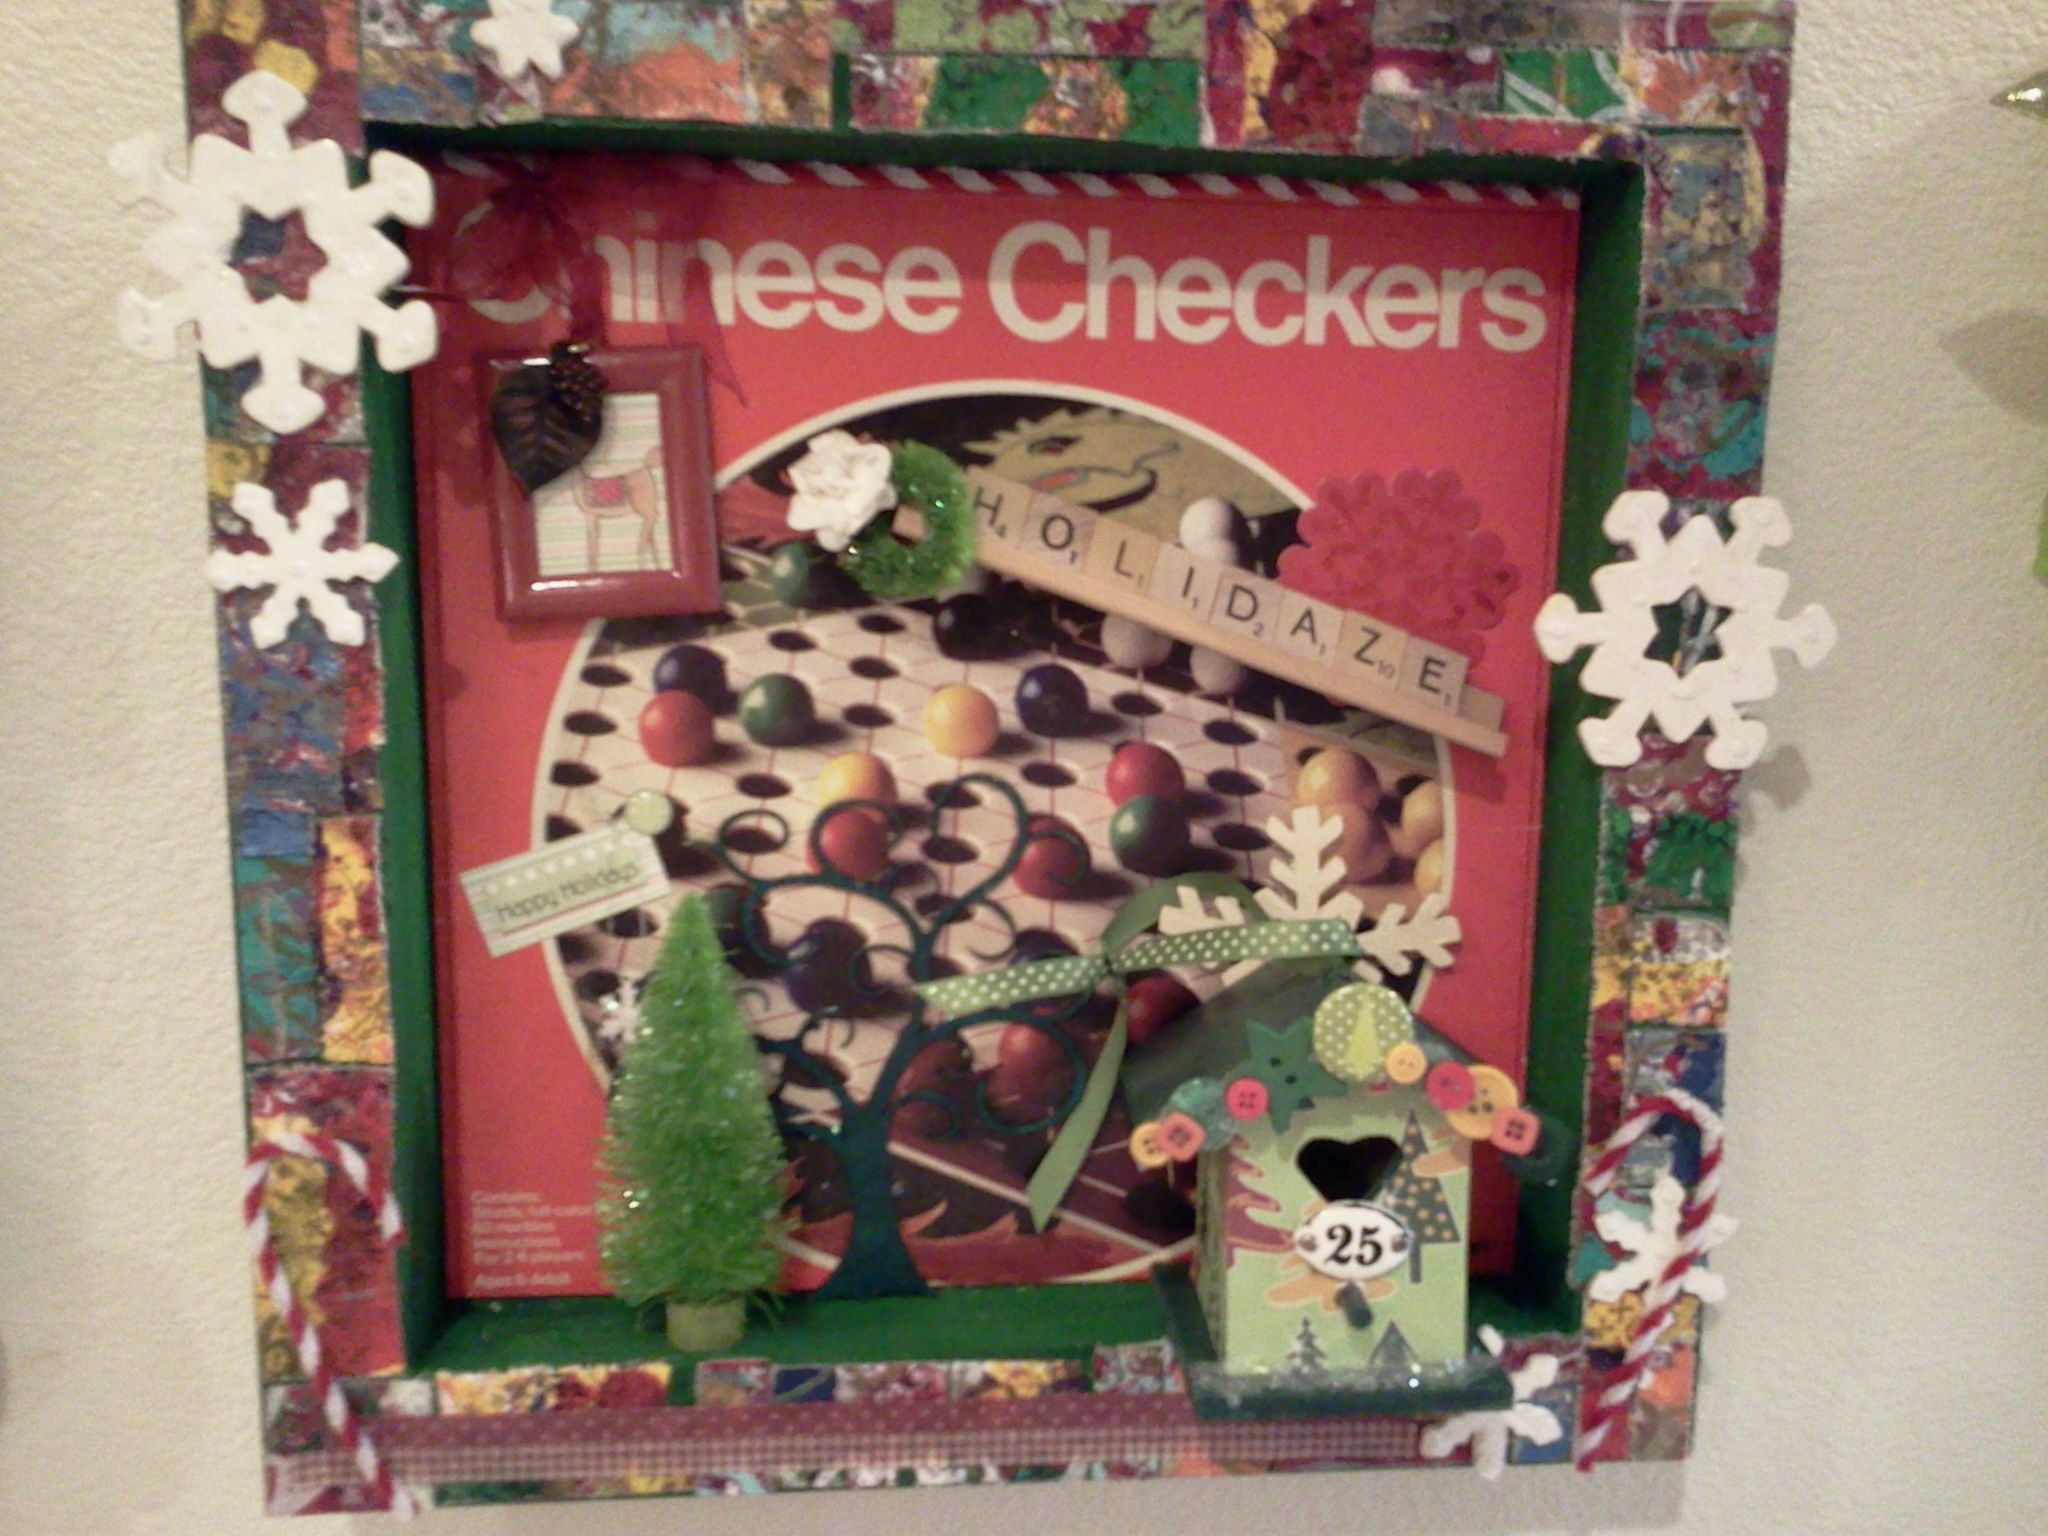 """Holidaze"" another shadowbox by Carla Bange created from the box top of a Chinese Checkers game, with a birdhouse I made for holiday gifts, snowflakes, scrabble tiles, photo frame, Tim Holtz bottle brush tree and wreath (sprayed with Key Lime Glimmer Mist), pipe cleaner candy canes, washi tape, and Leaky Shed Studio's chipboard tree painted green."